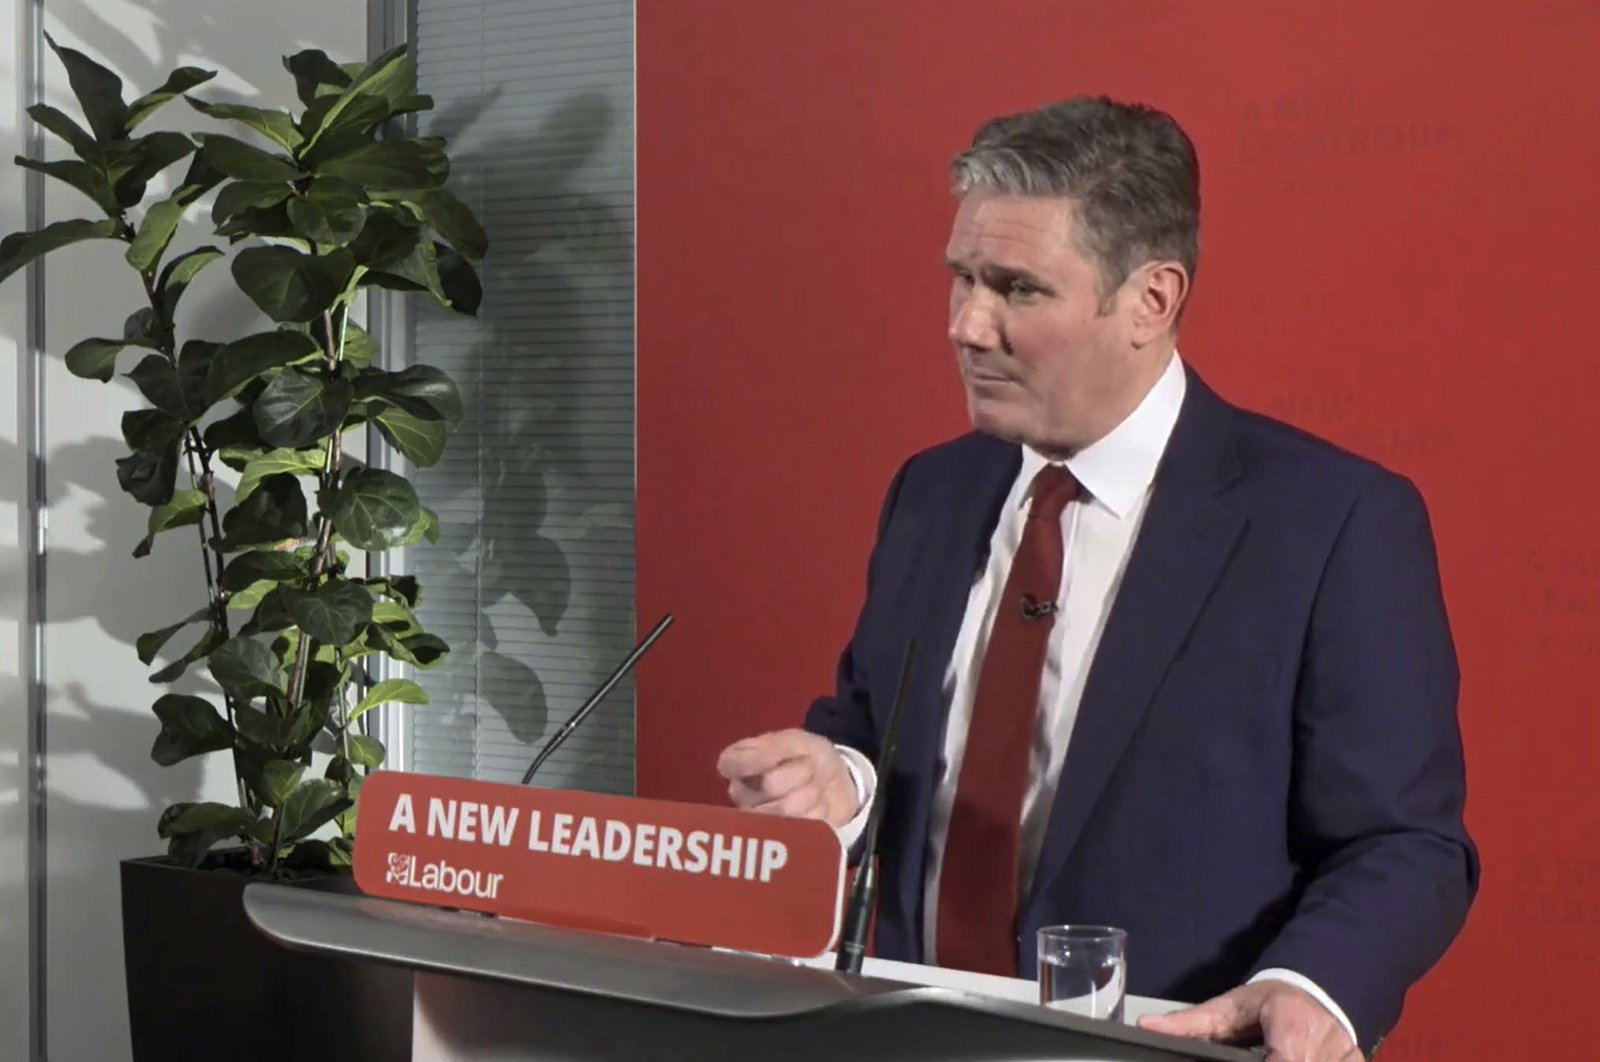 Britain's Labour Party leader Keir Starmer makes a statement, London, Oct. 29, 2020. (AP Photo)